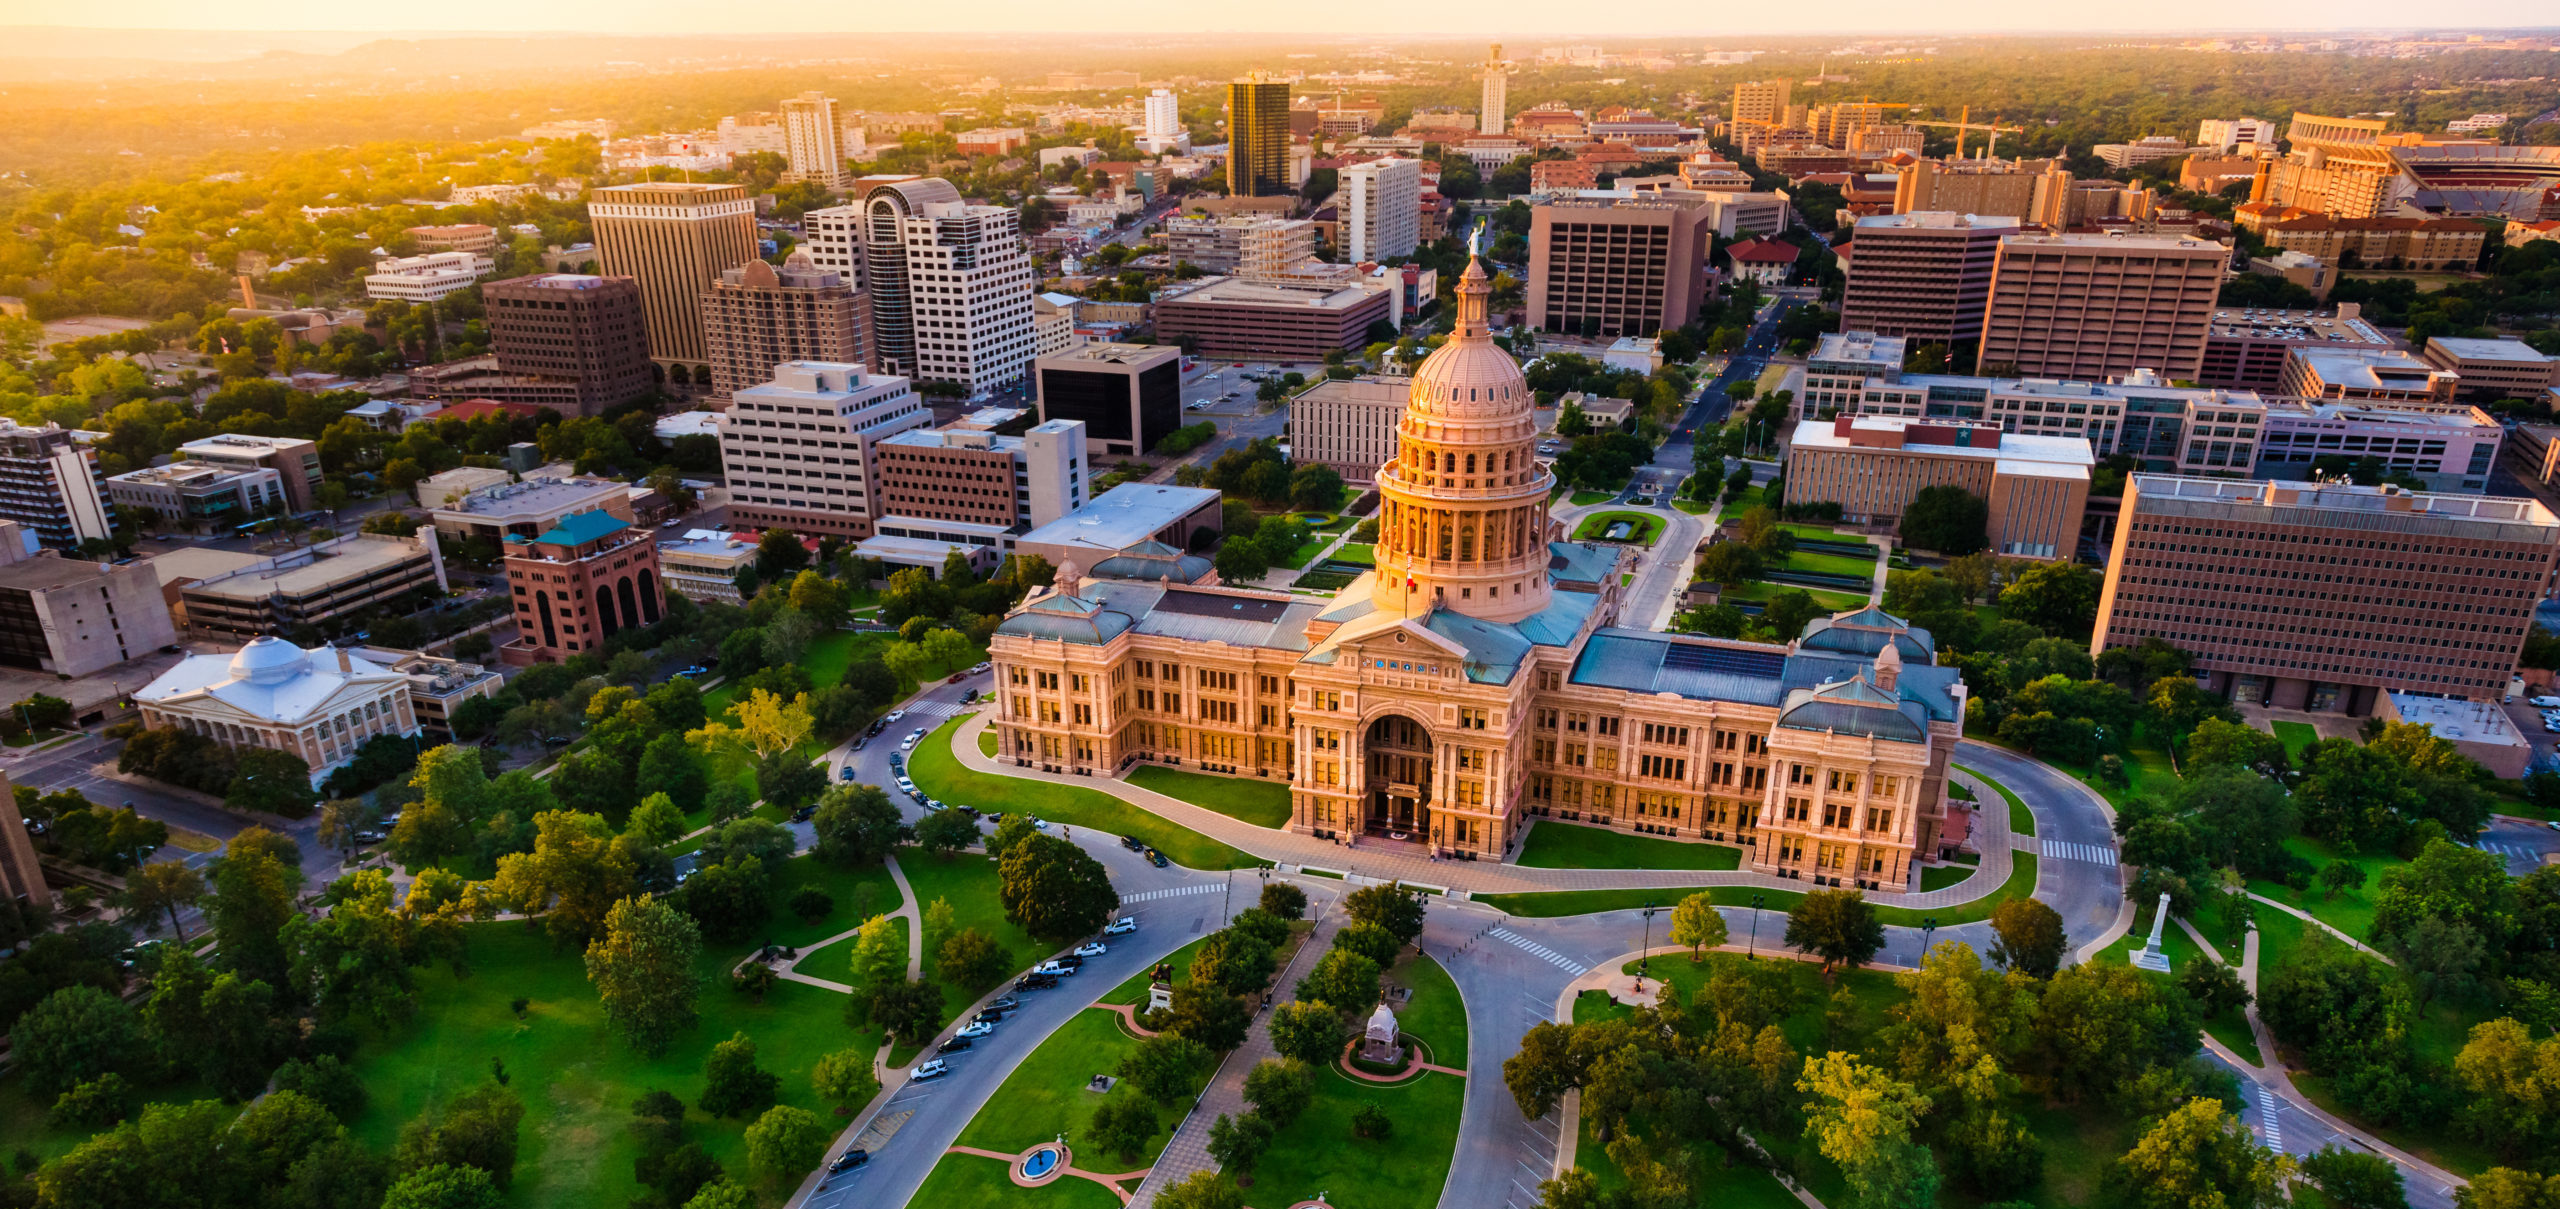 aerial view of Texas Capitol